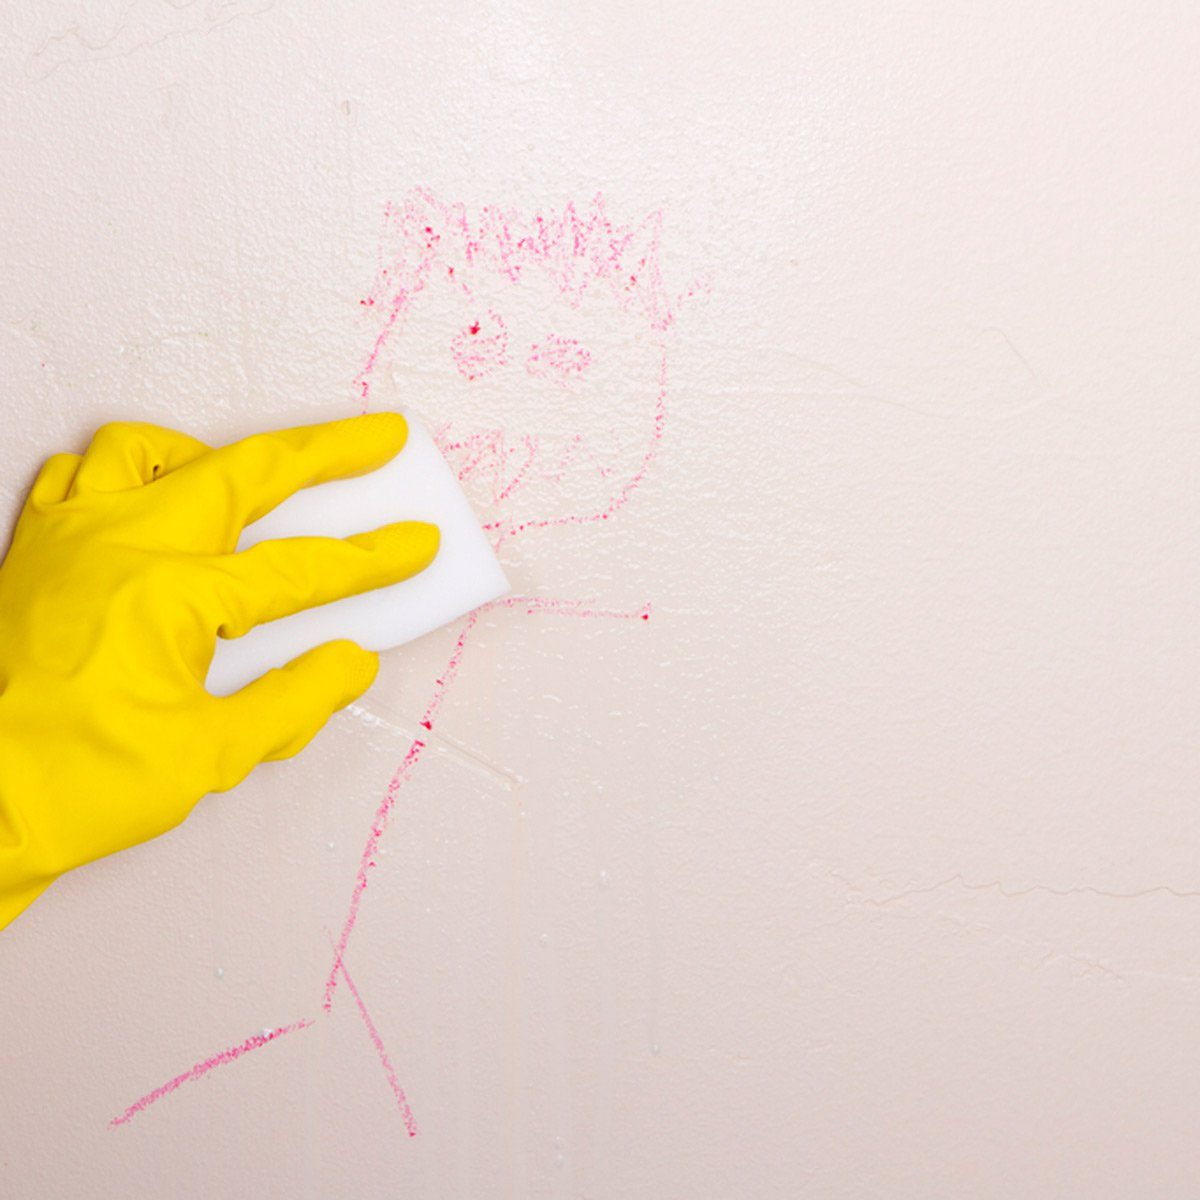 Removing crayon drawing from wall